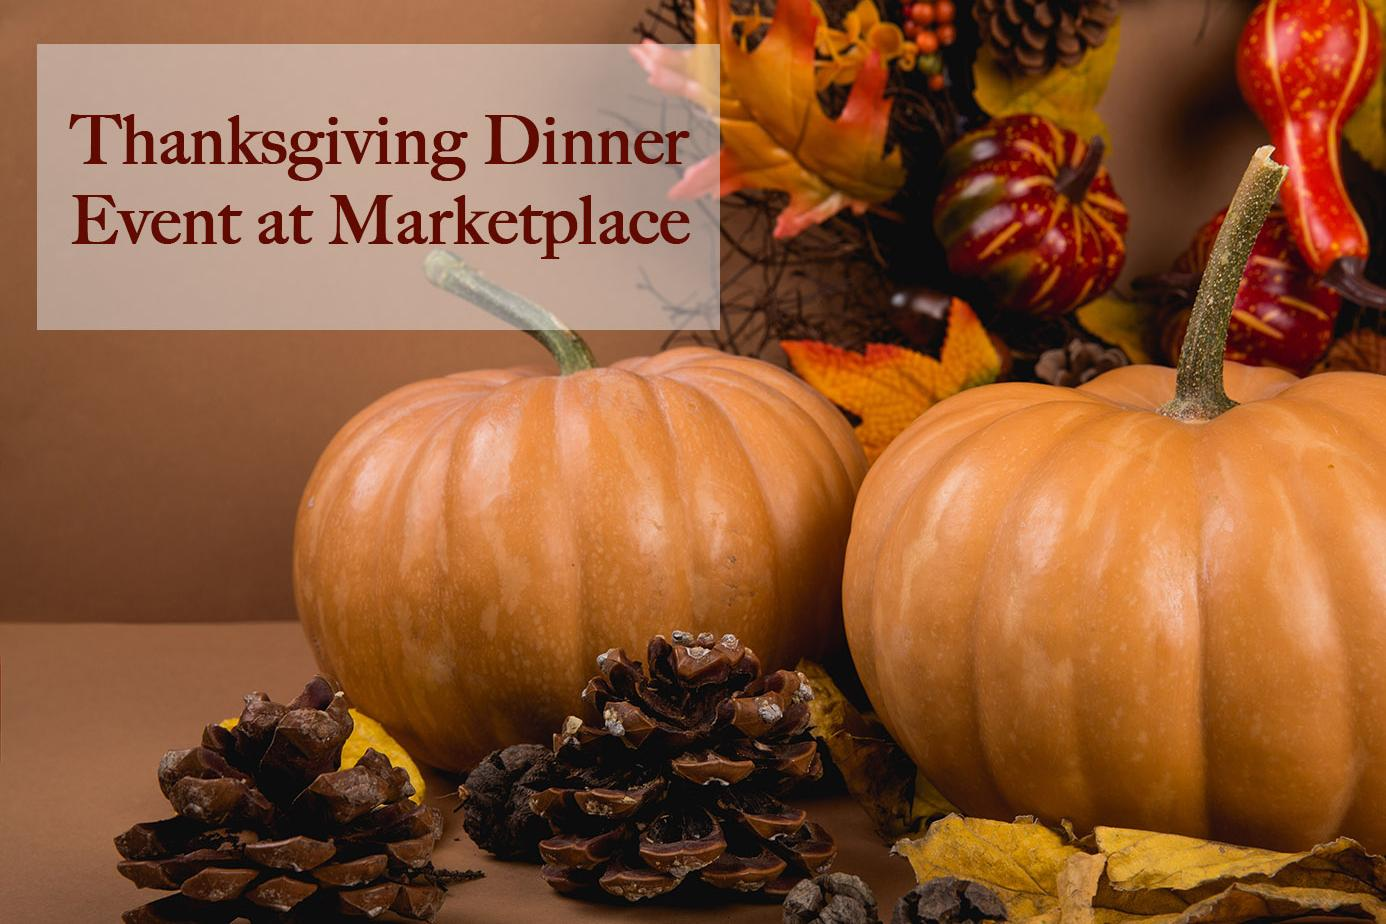 Thanksgiving Dinner event at Marketplace